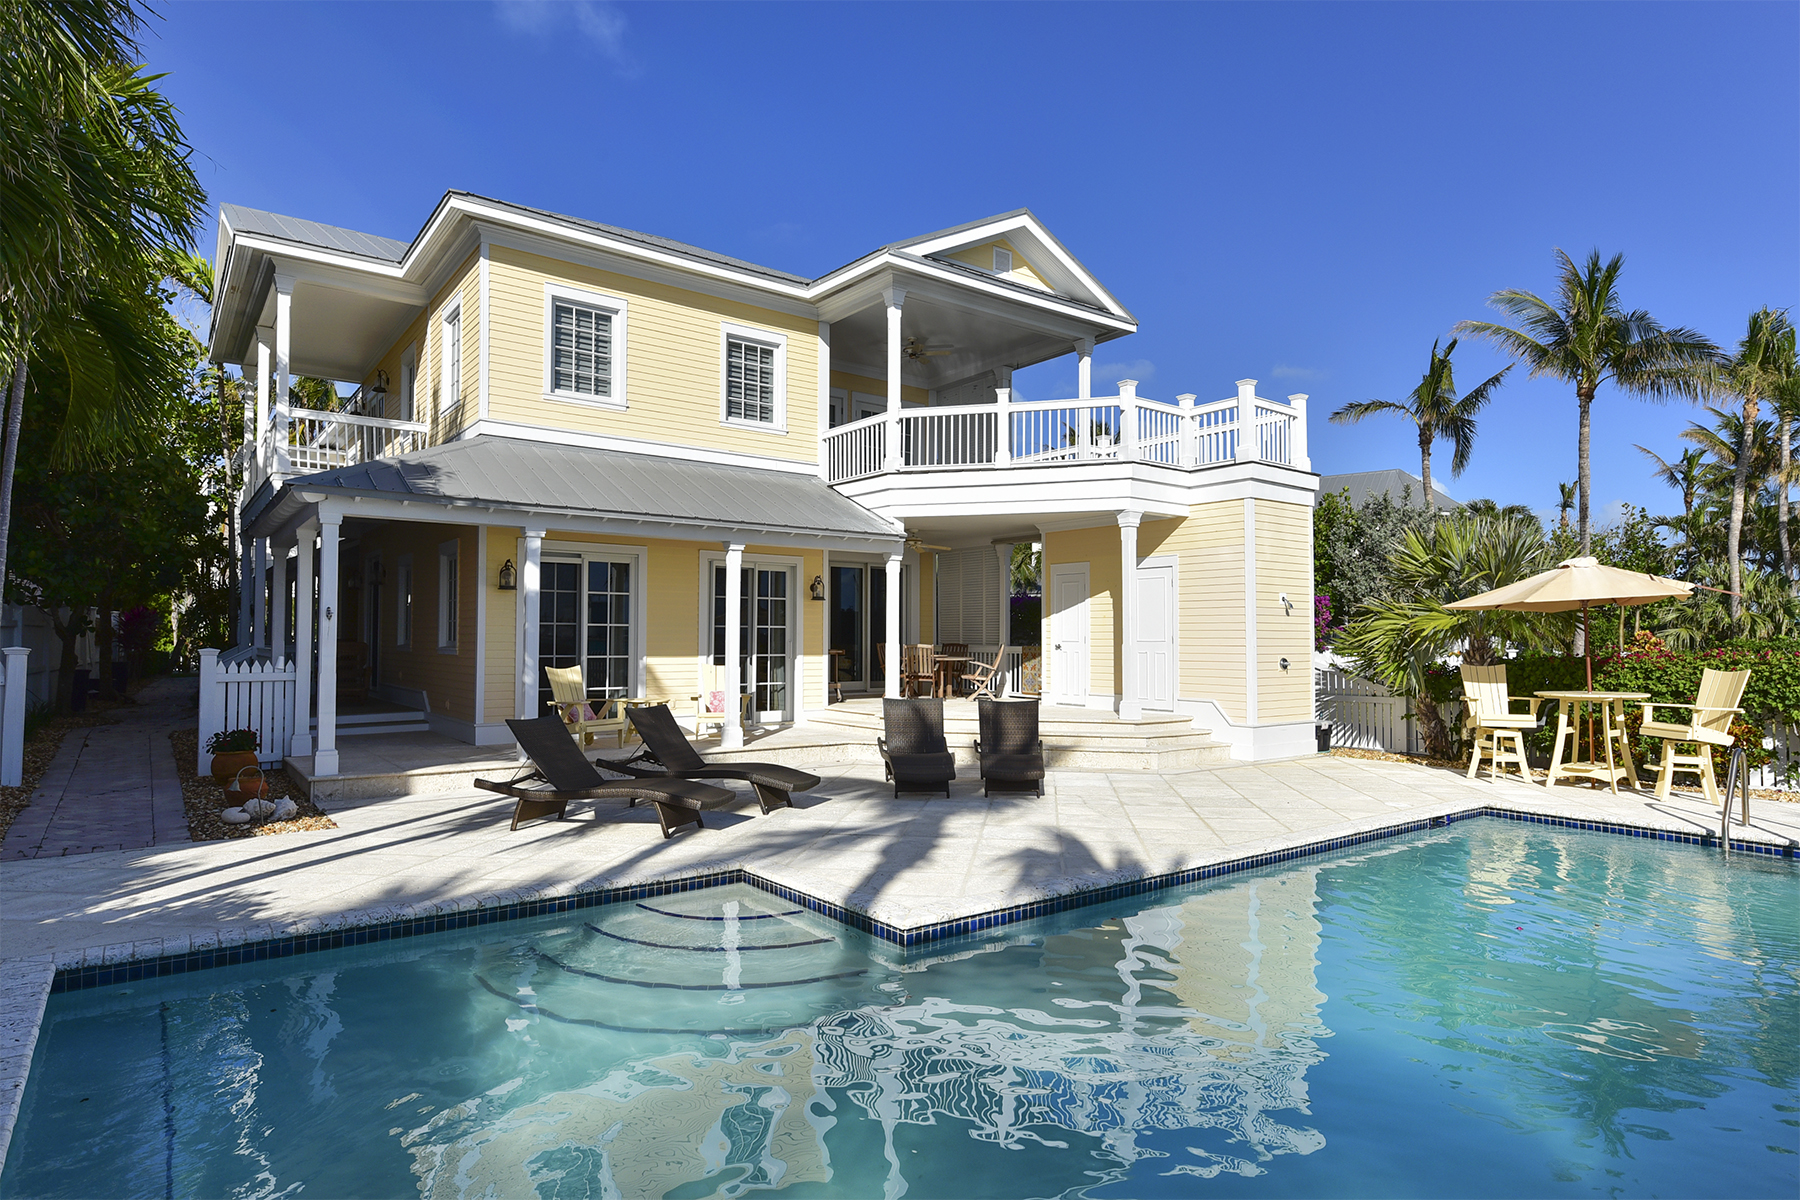 Moradia para Venda às Oceanfront Home on Sunset Key 23 Sunset Key Drive Key West, Florida 33040 Estados Unidos